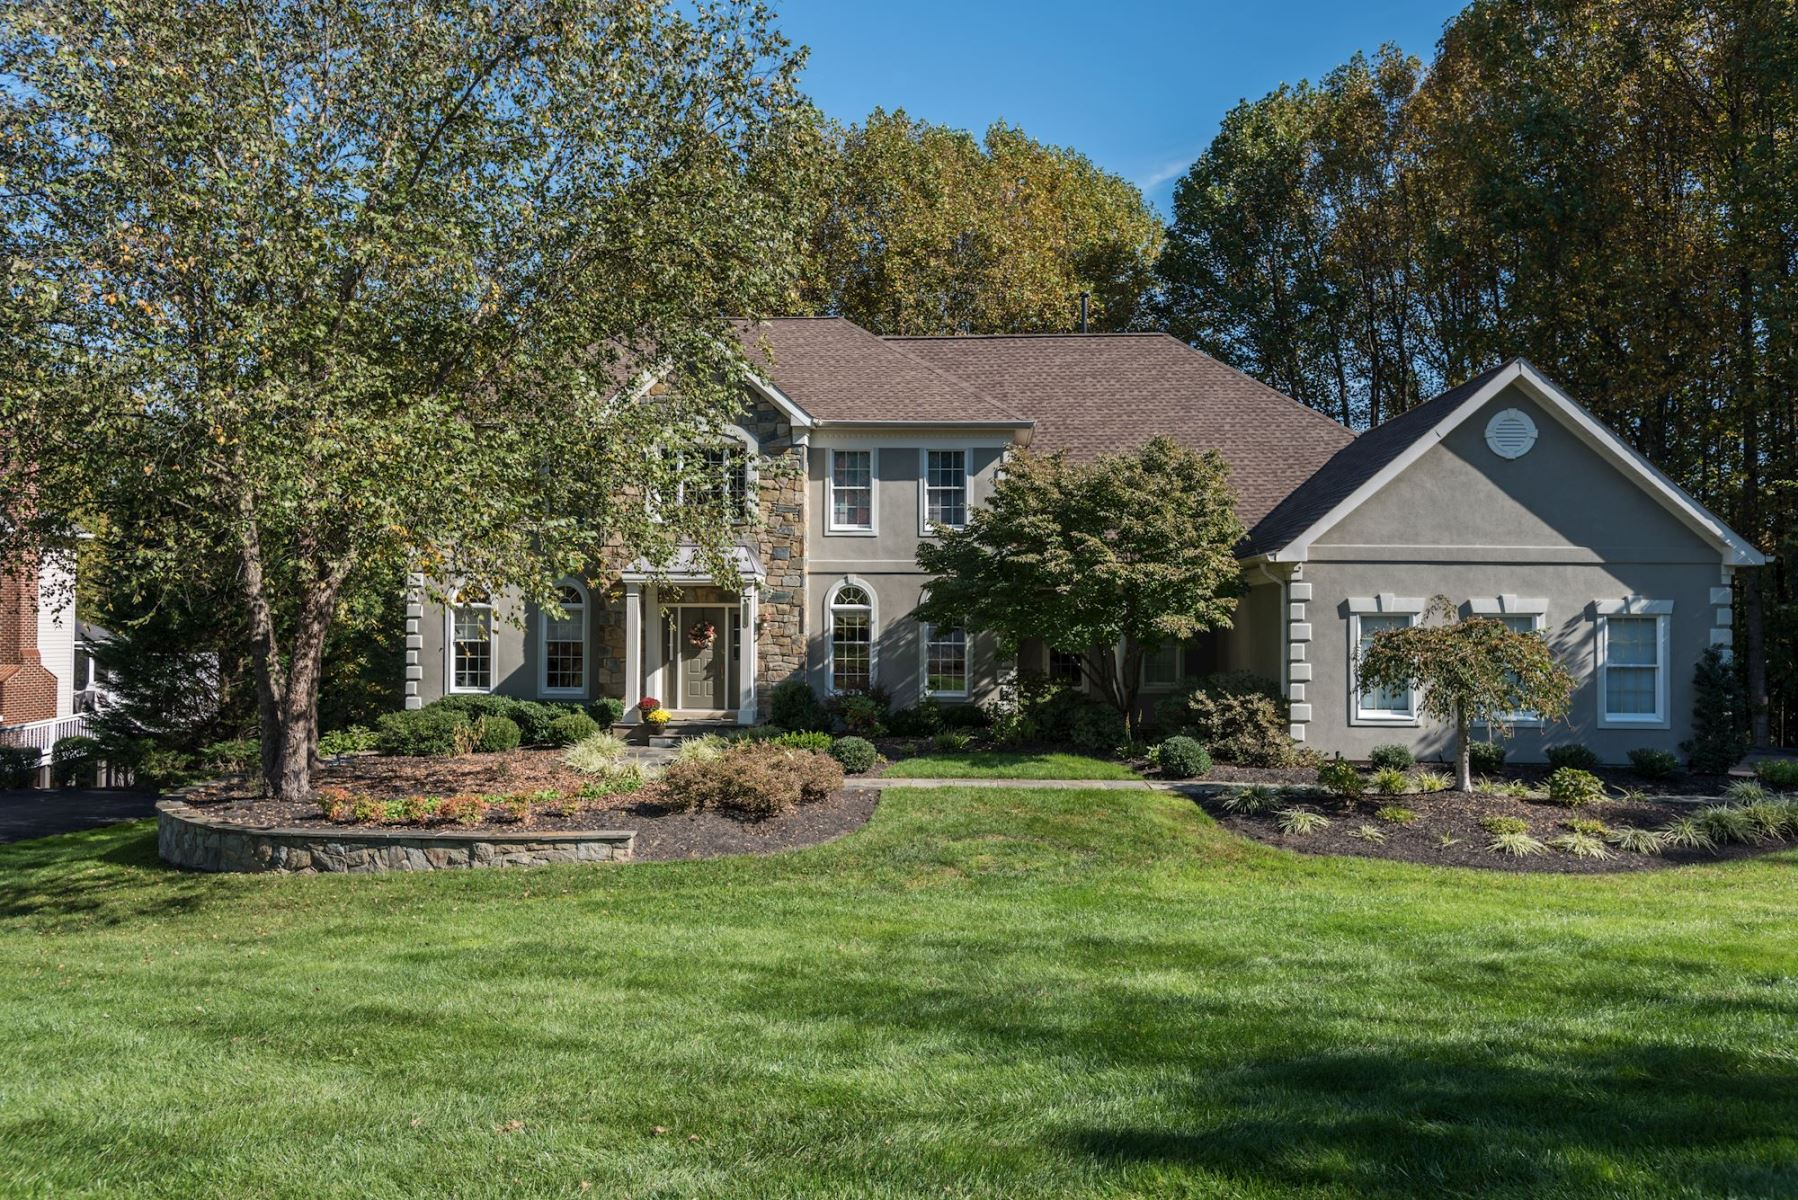 Single Family Home for Sale at 1284 Cobble Pond Way, Vienna Vienna, Virginia 22182 United States